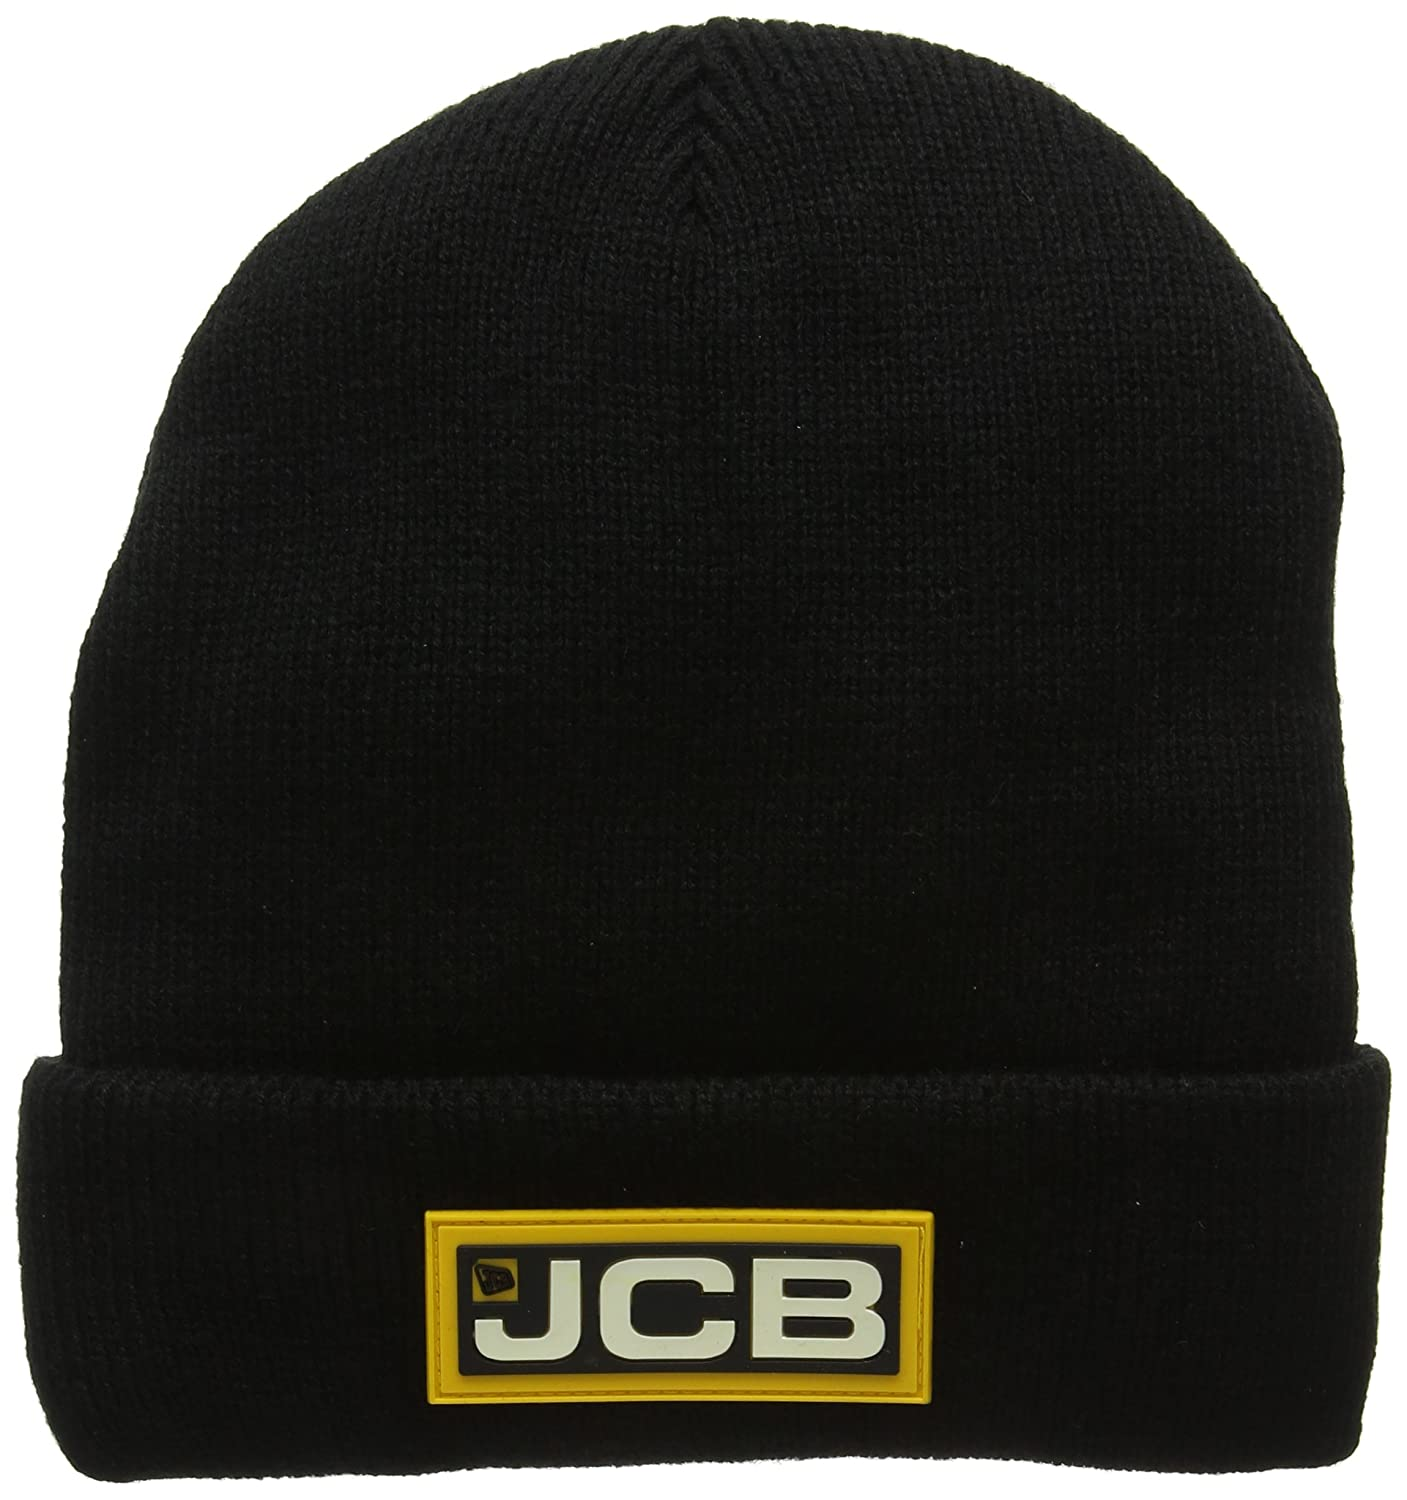 JCB Men's Stone Knitted Beanie Hat